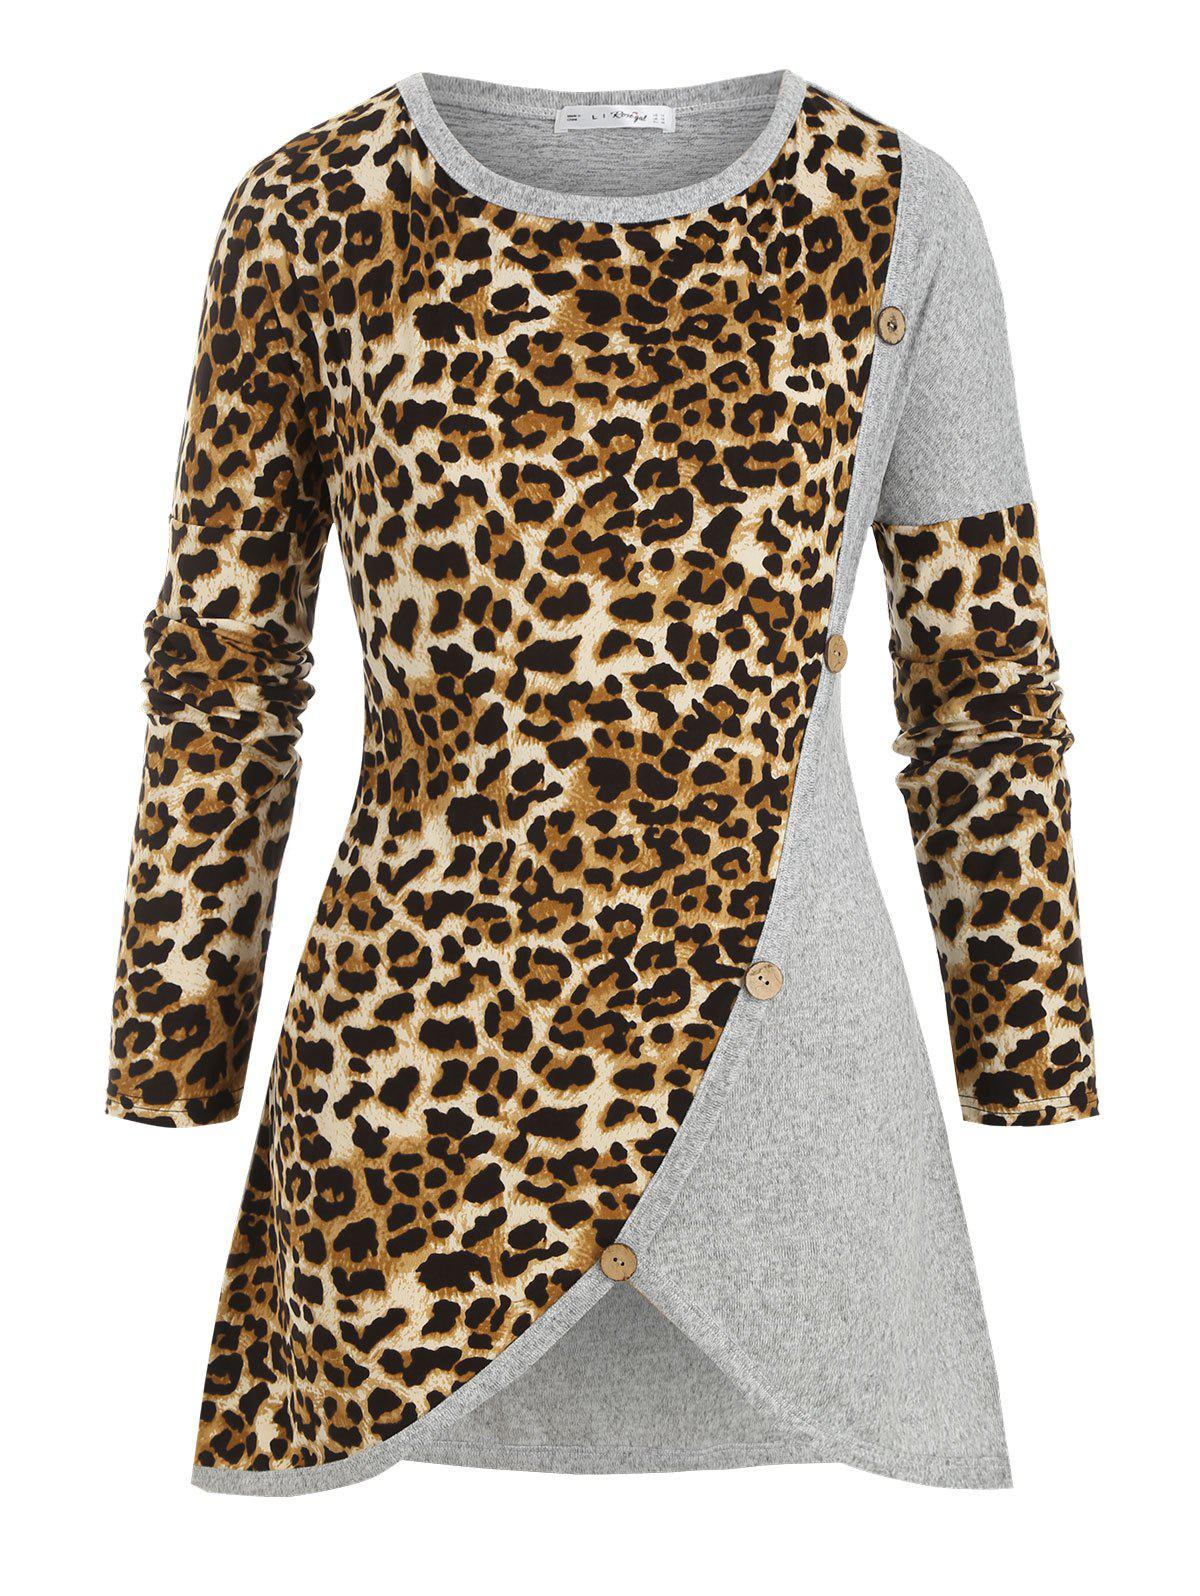 New Crew Neck Buttoned Leopard Panel Plus Size Knitwear